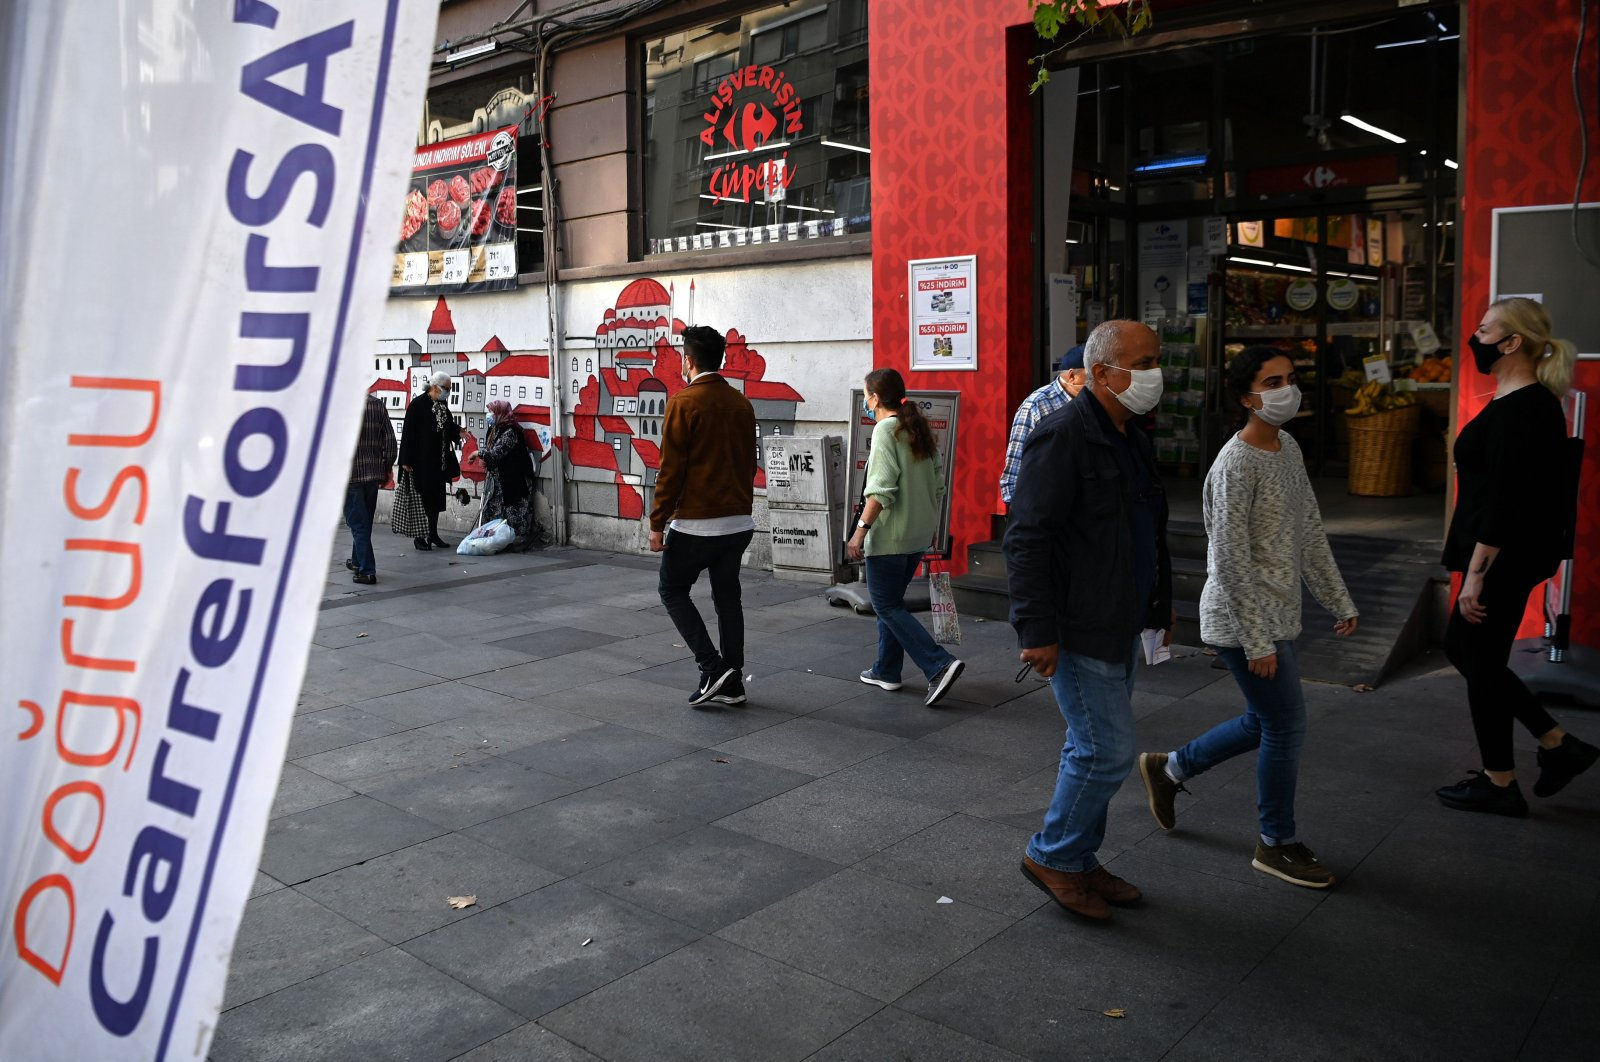 """People wearing face masks walk in front of a French brand supermarket """"Carrefour"""" at Nişantaşı district in Istanbul, Turkey, Oct. 26, 2020. (AFP Photo)"""